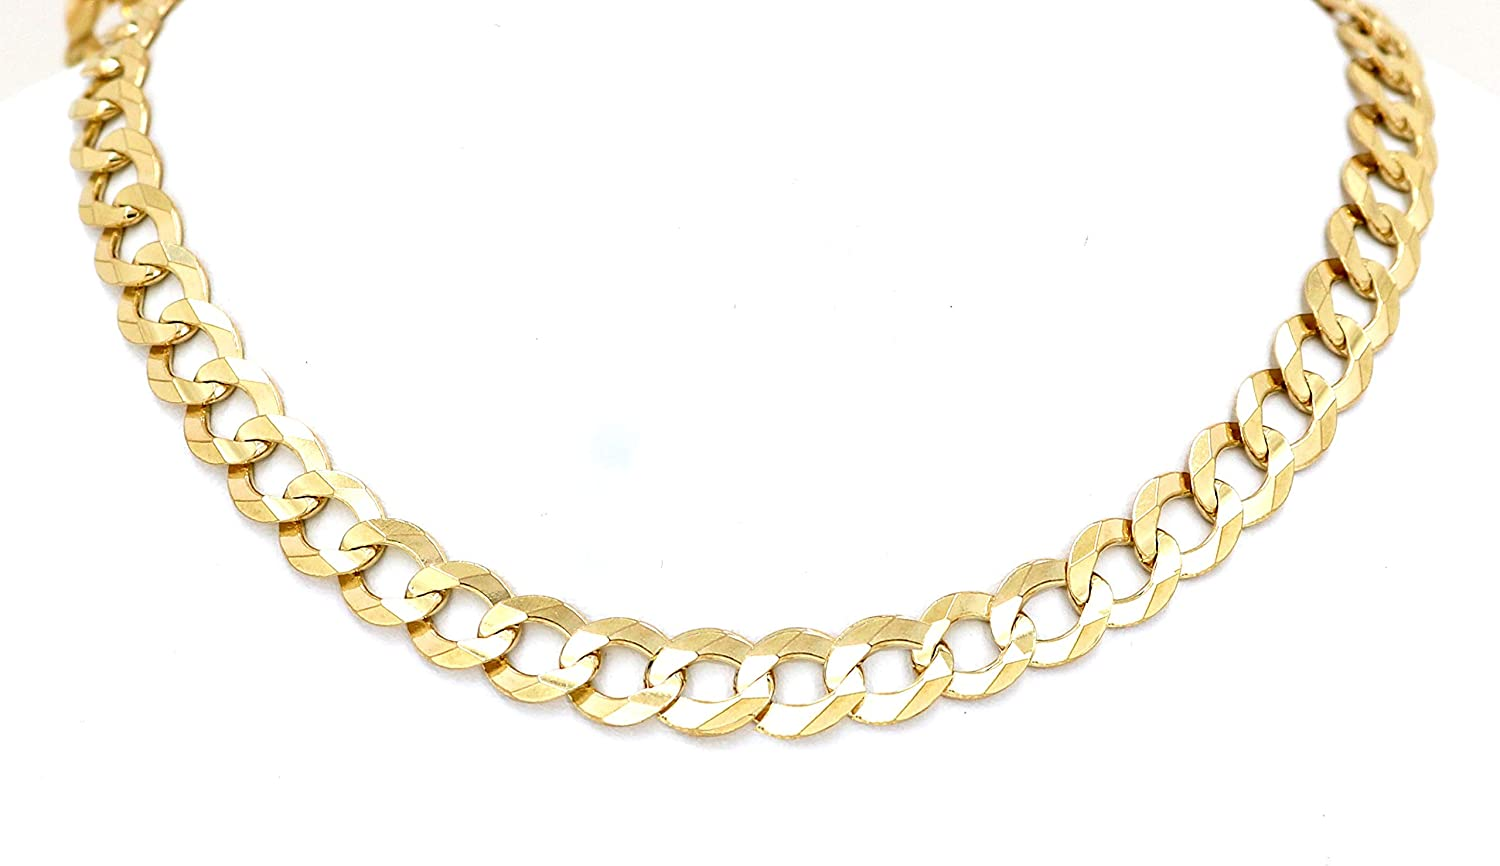 Jewels By Lux 14K Yellow Gold Double Link Hollow Rope Chain Necklace With Lobster Claw Clasp